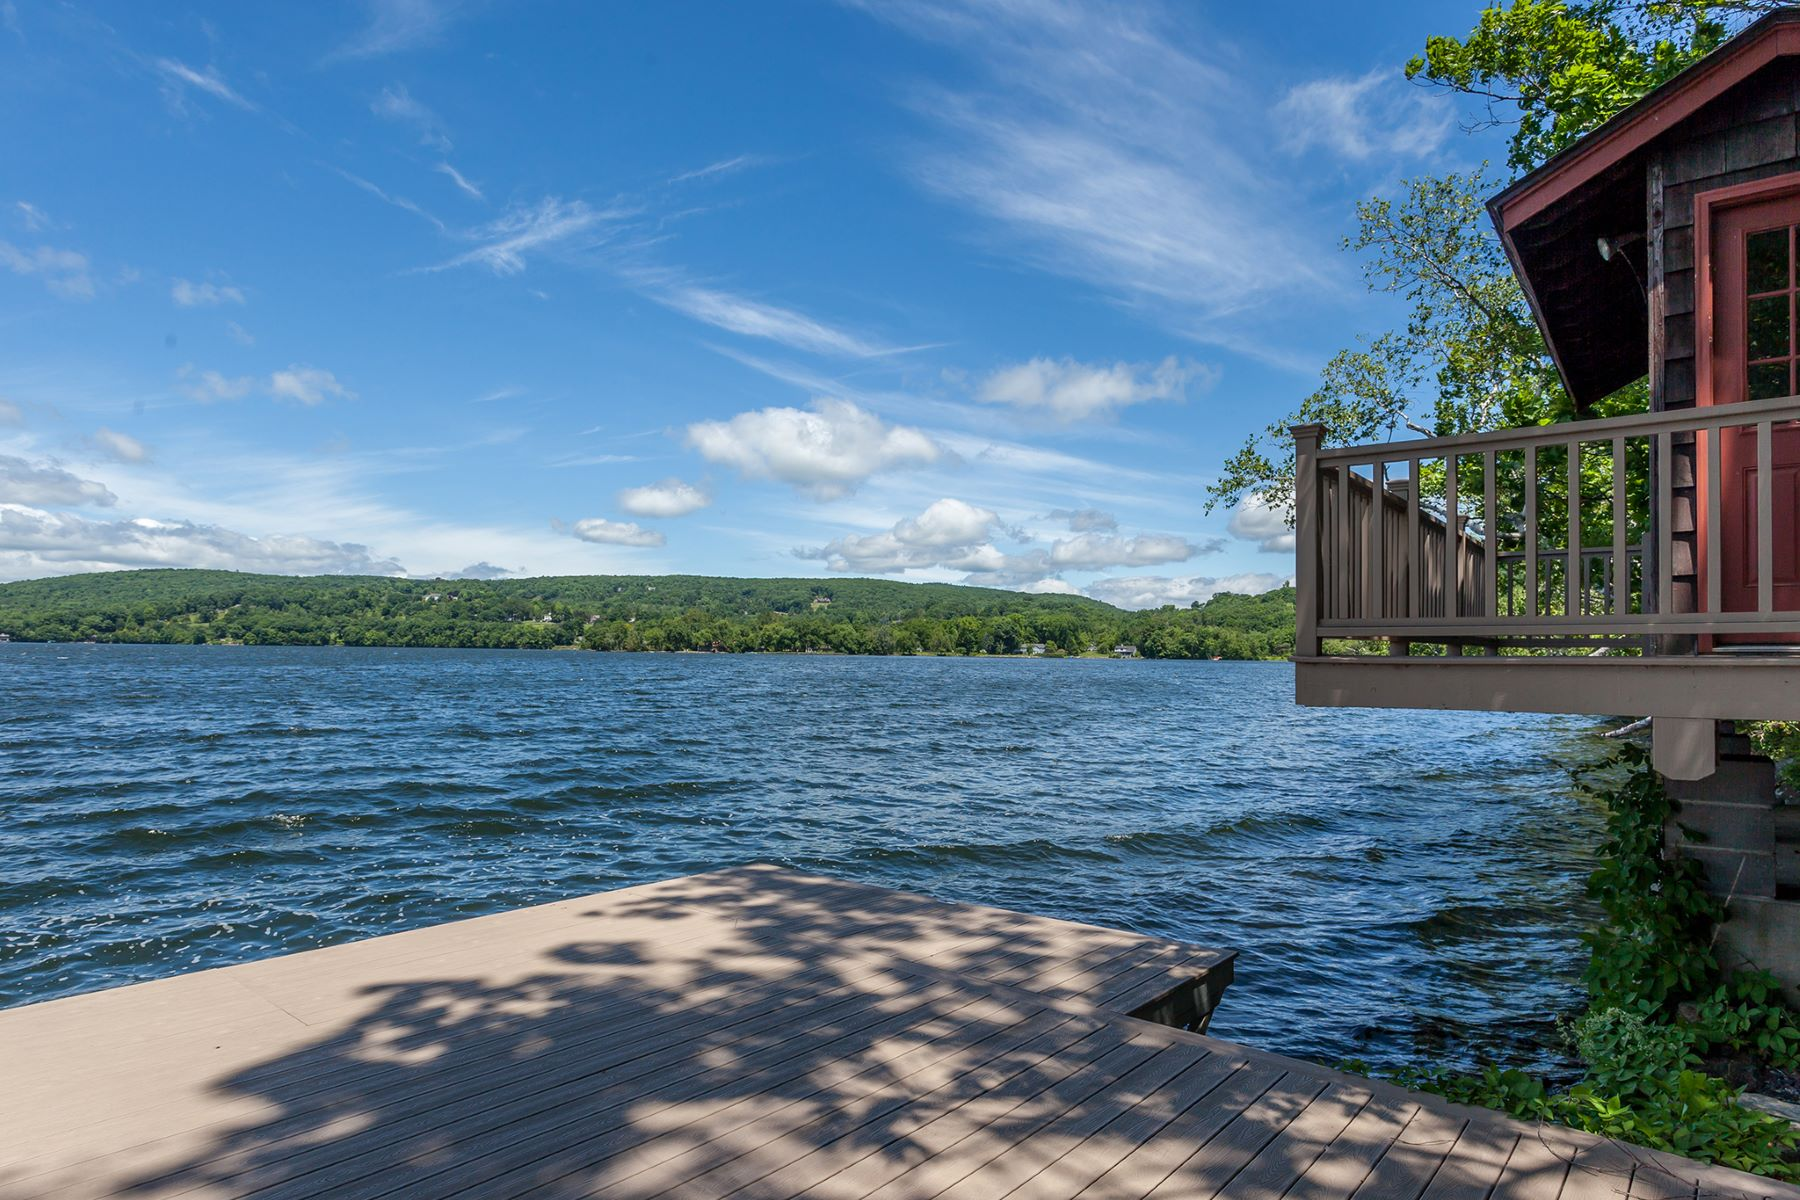 Villa per Vendita alle ore The Lake Waramaug Lodge 156 East Shore Road Washington, Connecticut, 06777 Stati Uniti